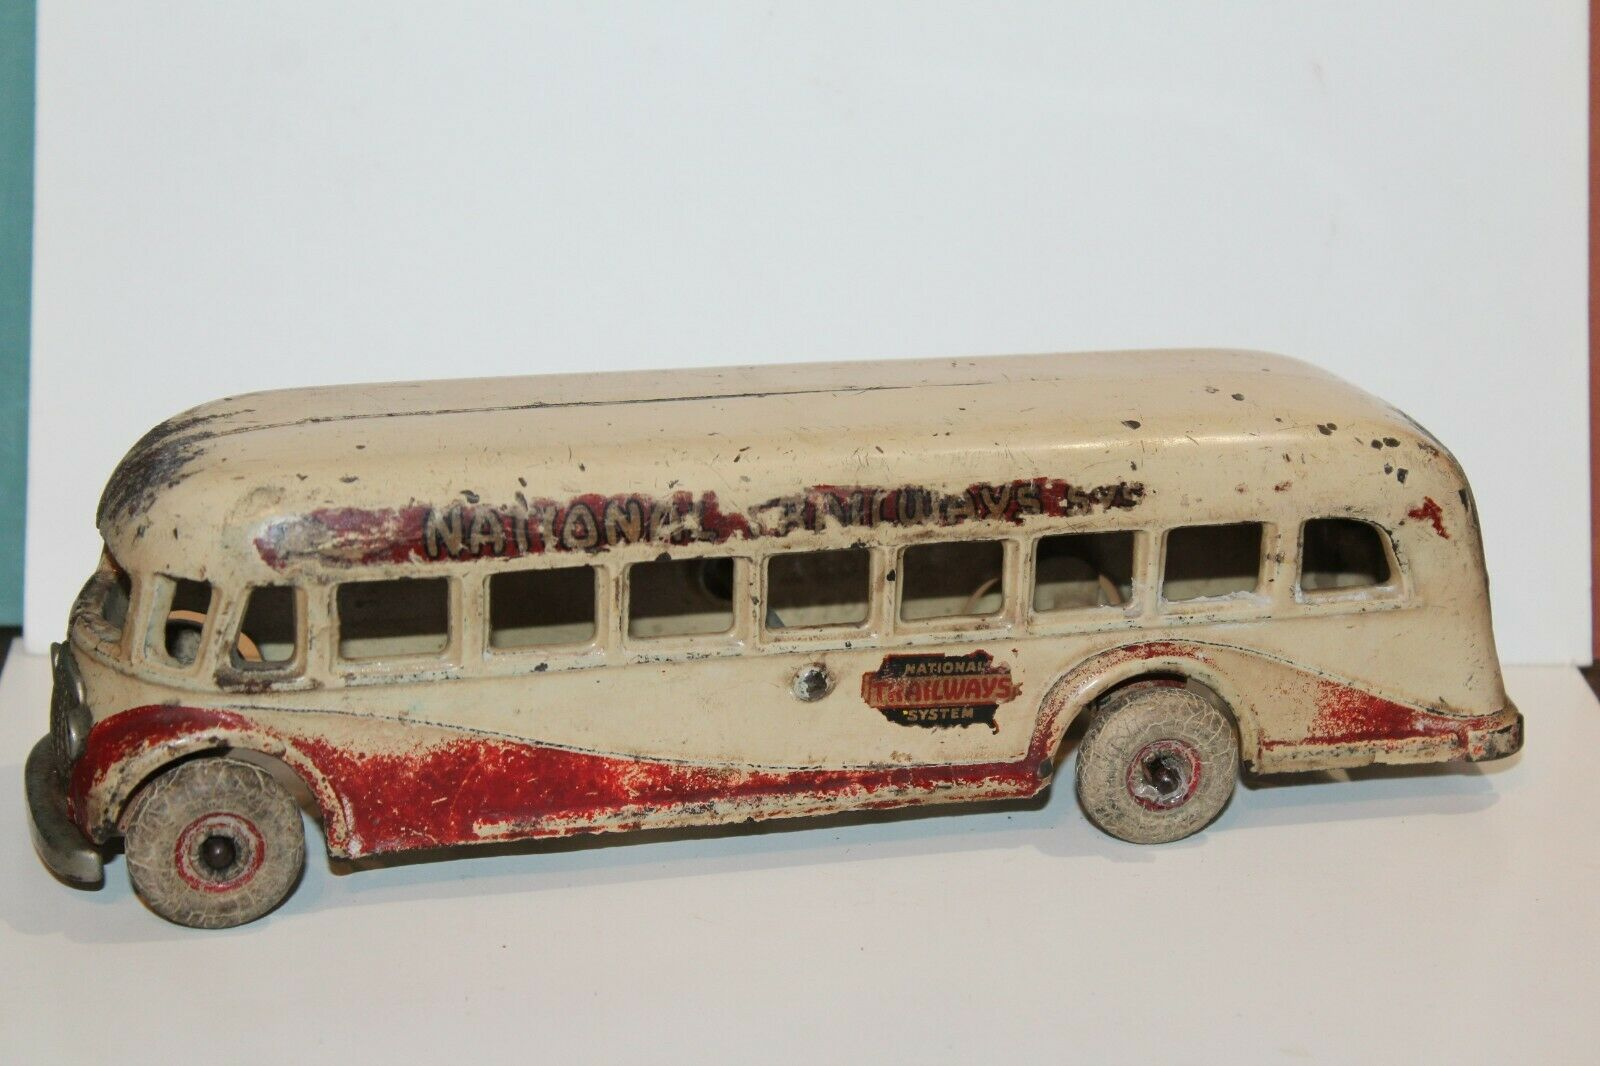 NICE VINTAGE 1930'S ARCADE CAST CAST CAST IRON NATIONAL TRAILWAYS SYSTEM BUS 619dfe